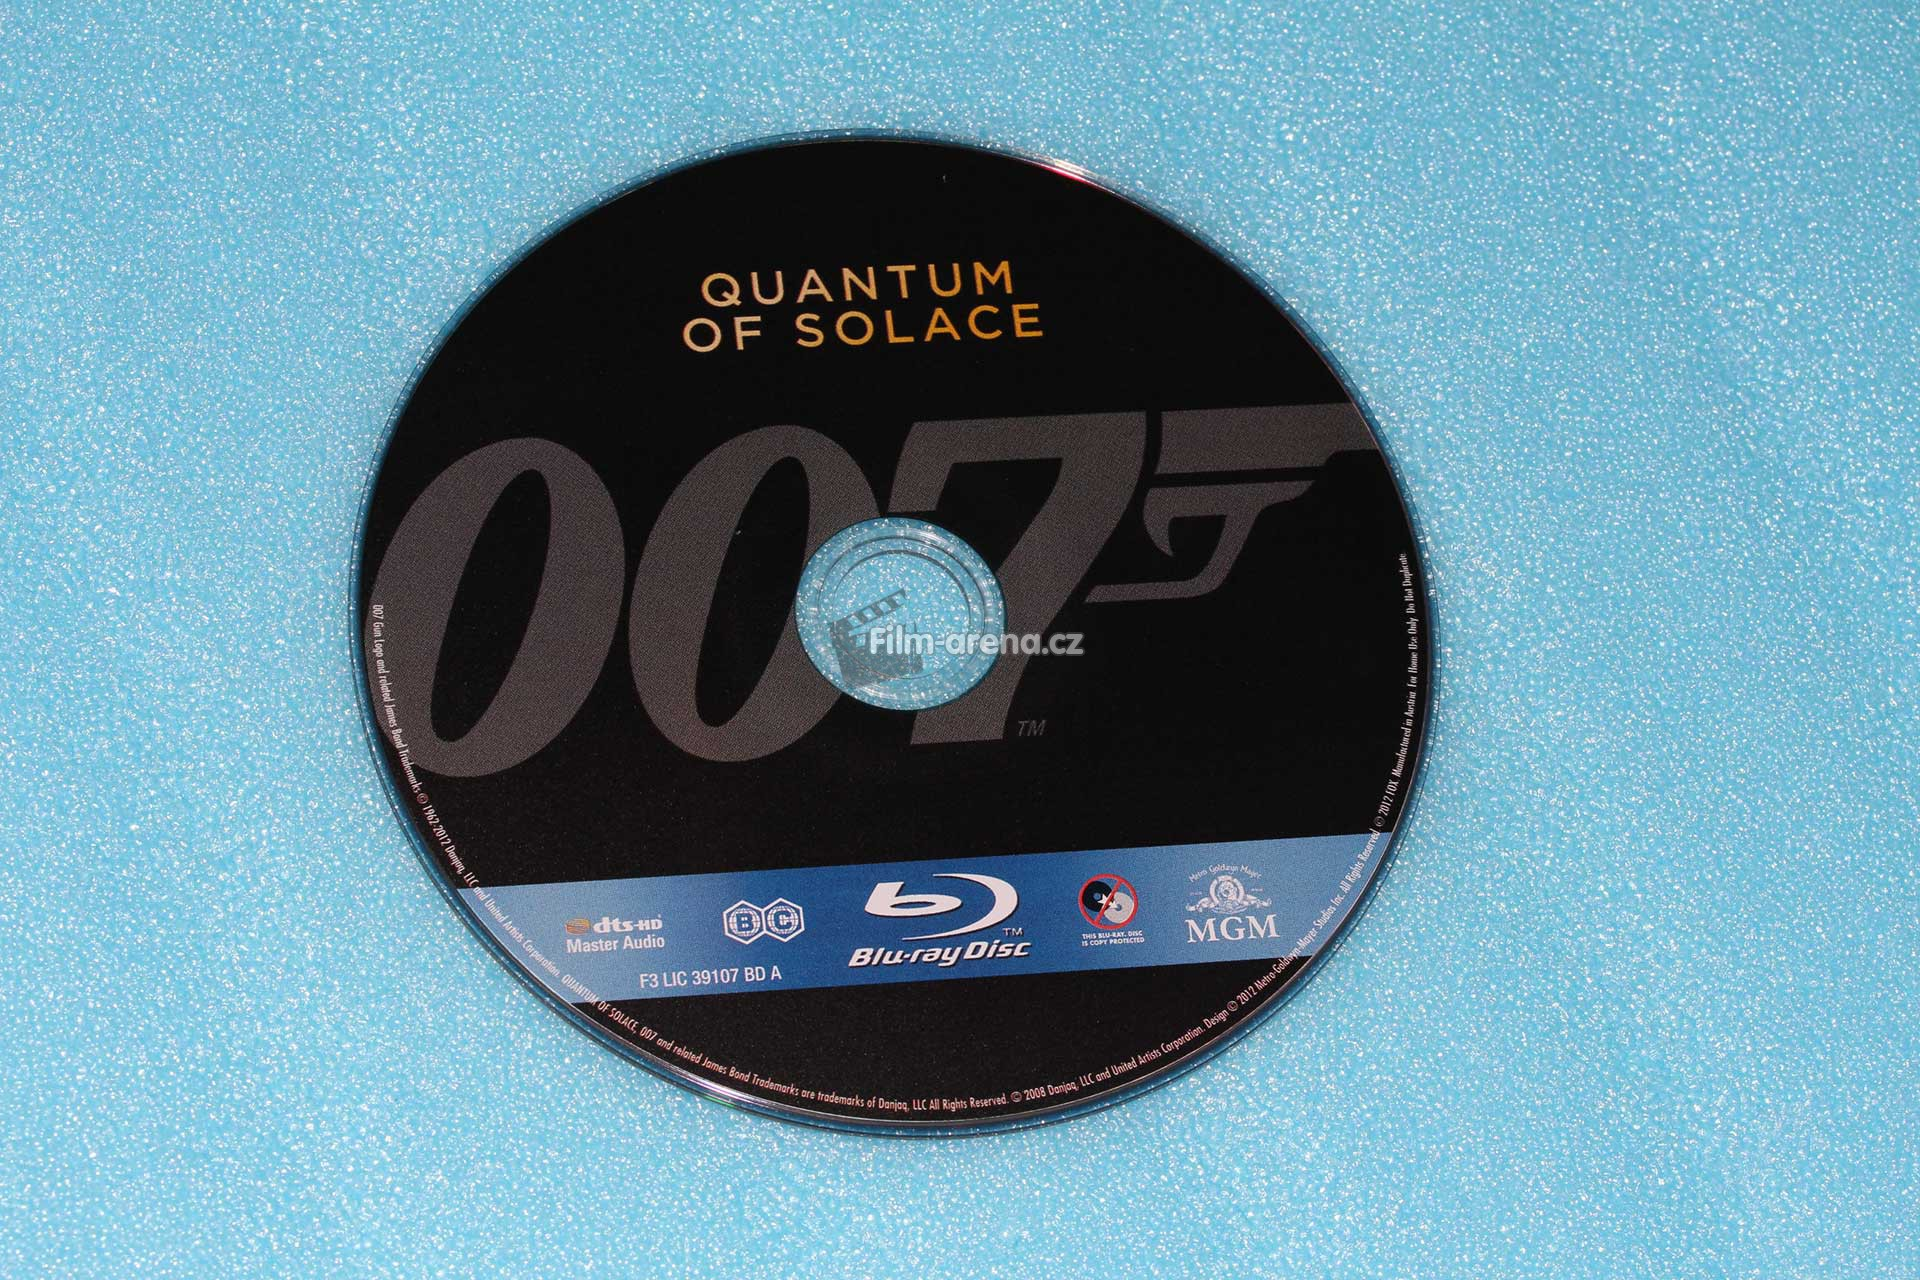 http://www.filmarena.cz/upload/images/nazivo/James_Bond/2008_Quantum_of_Solace/2008_quantum_08.jpg